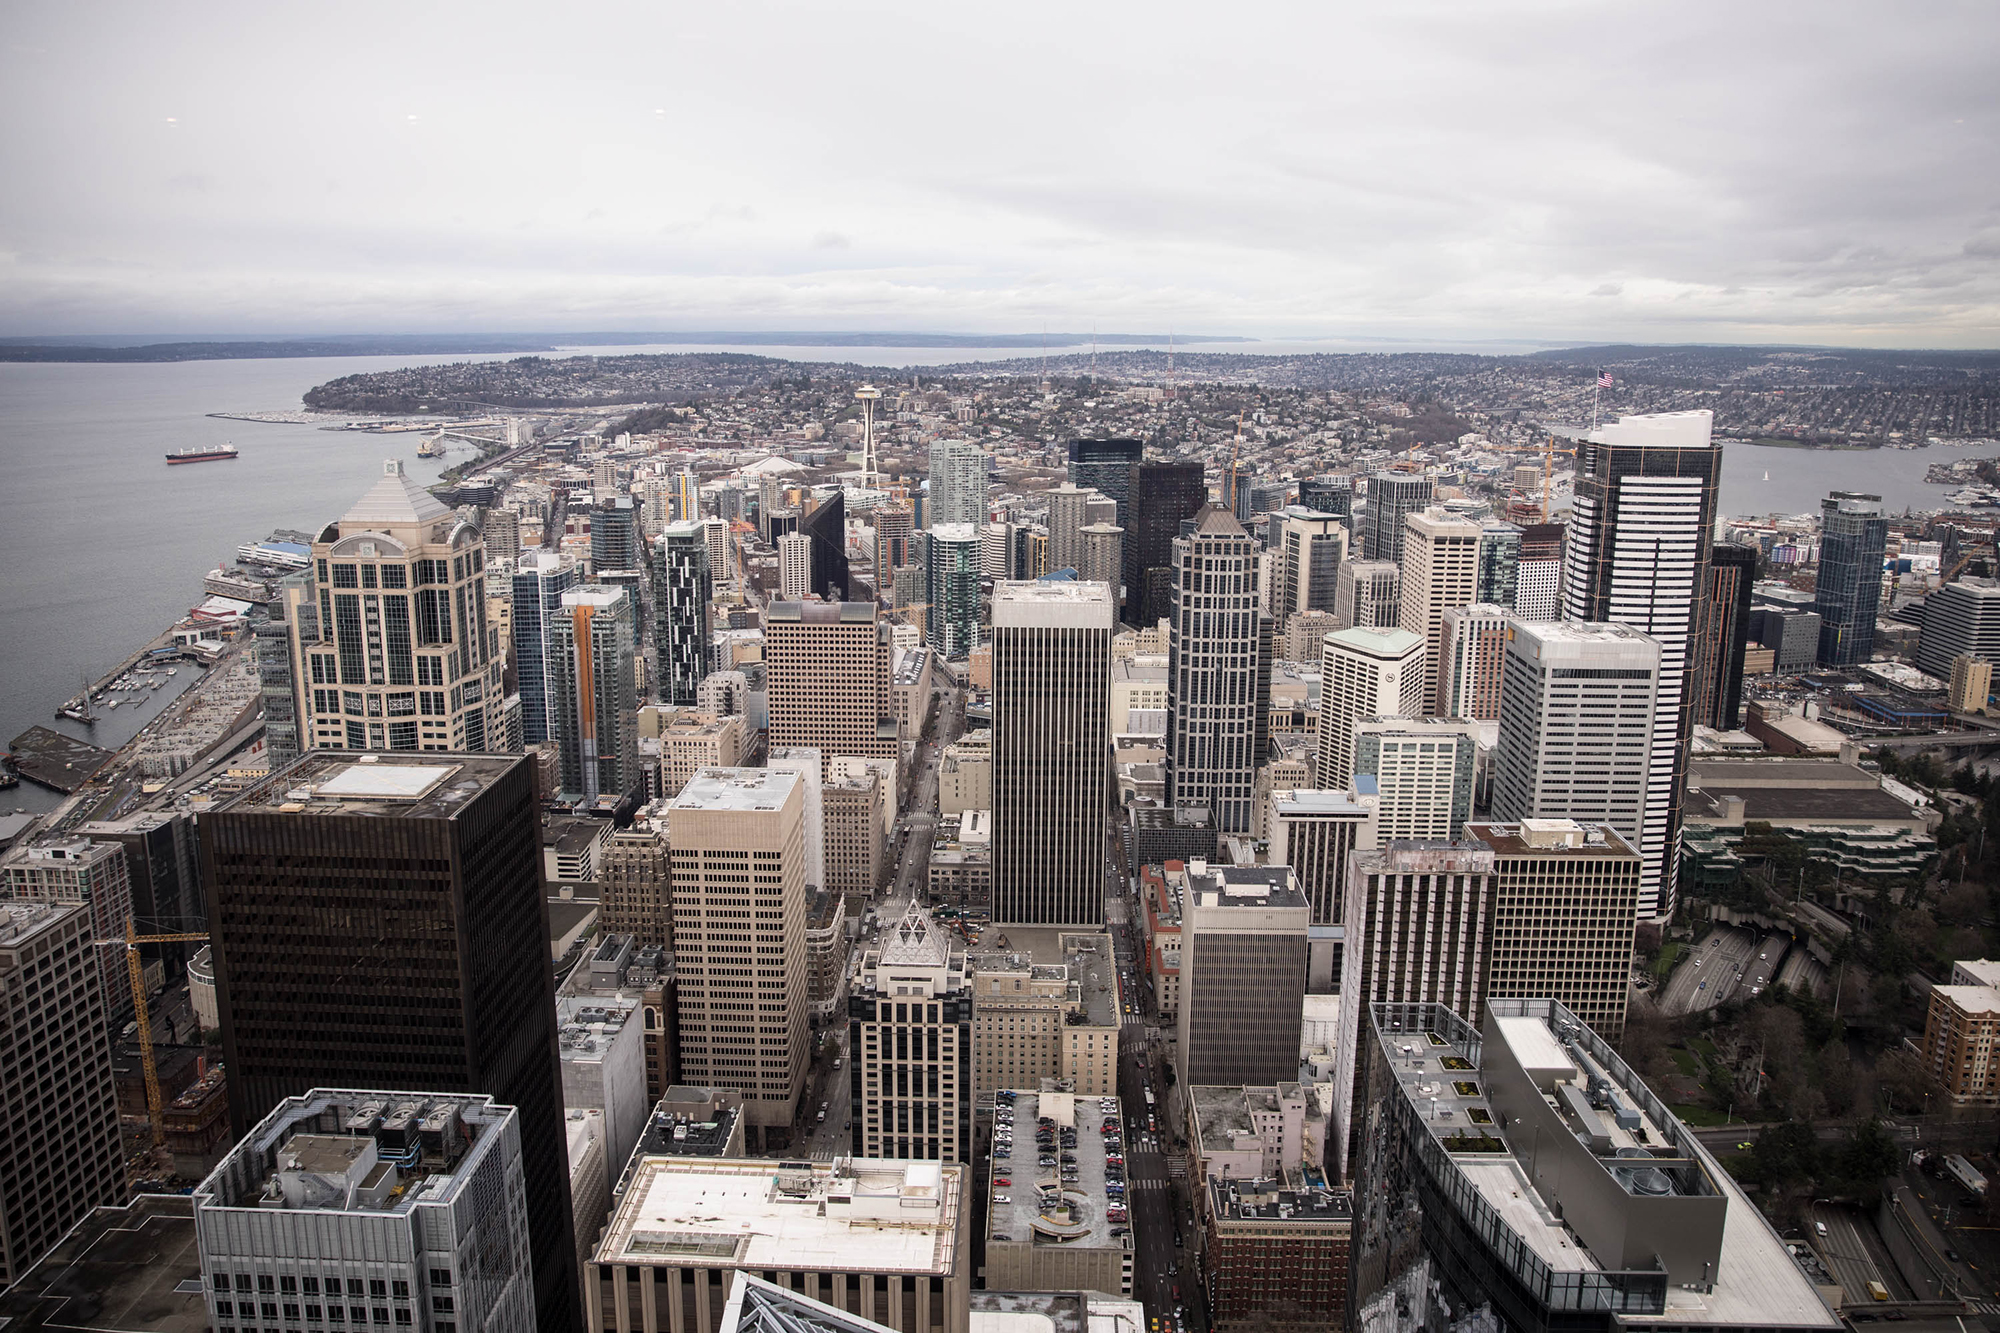 Downtown chaos may be the only constant in Seattle's changing core